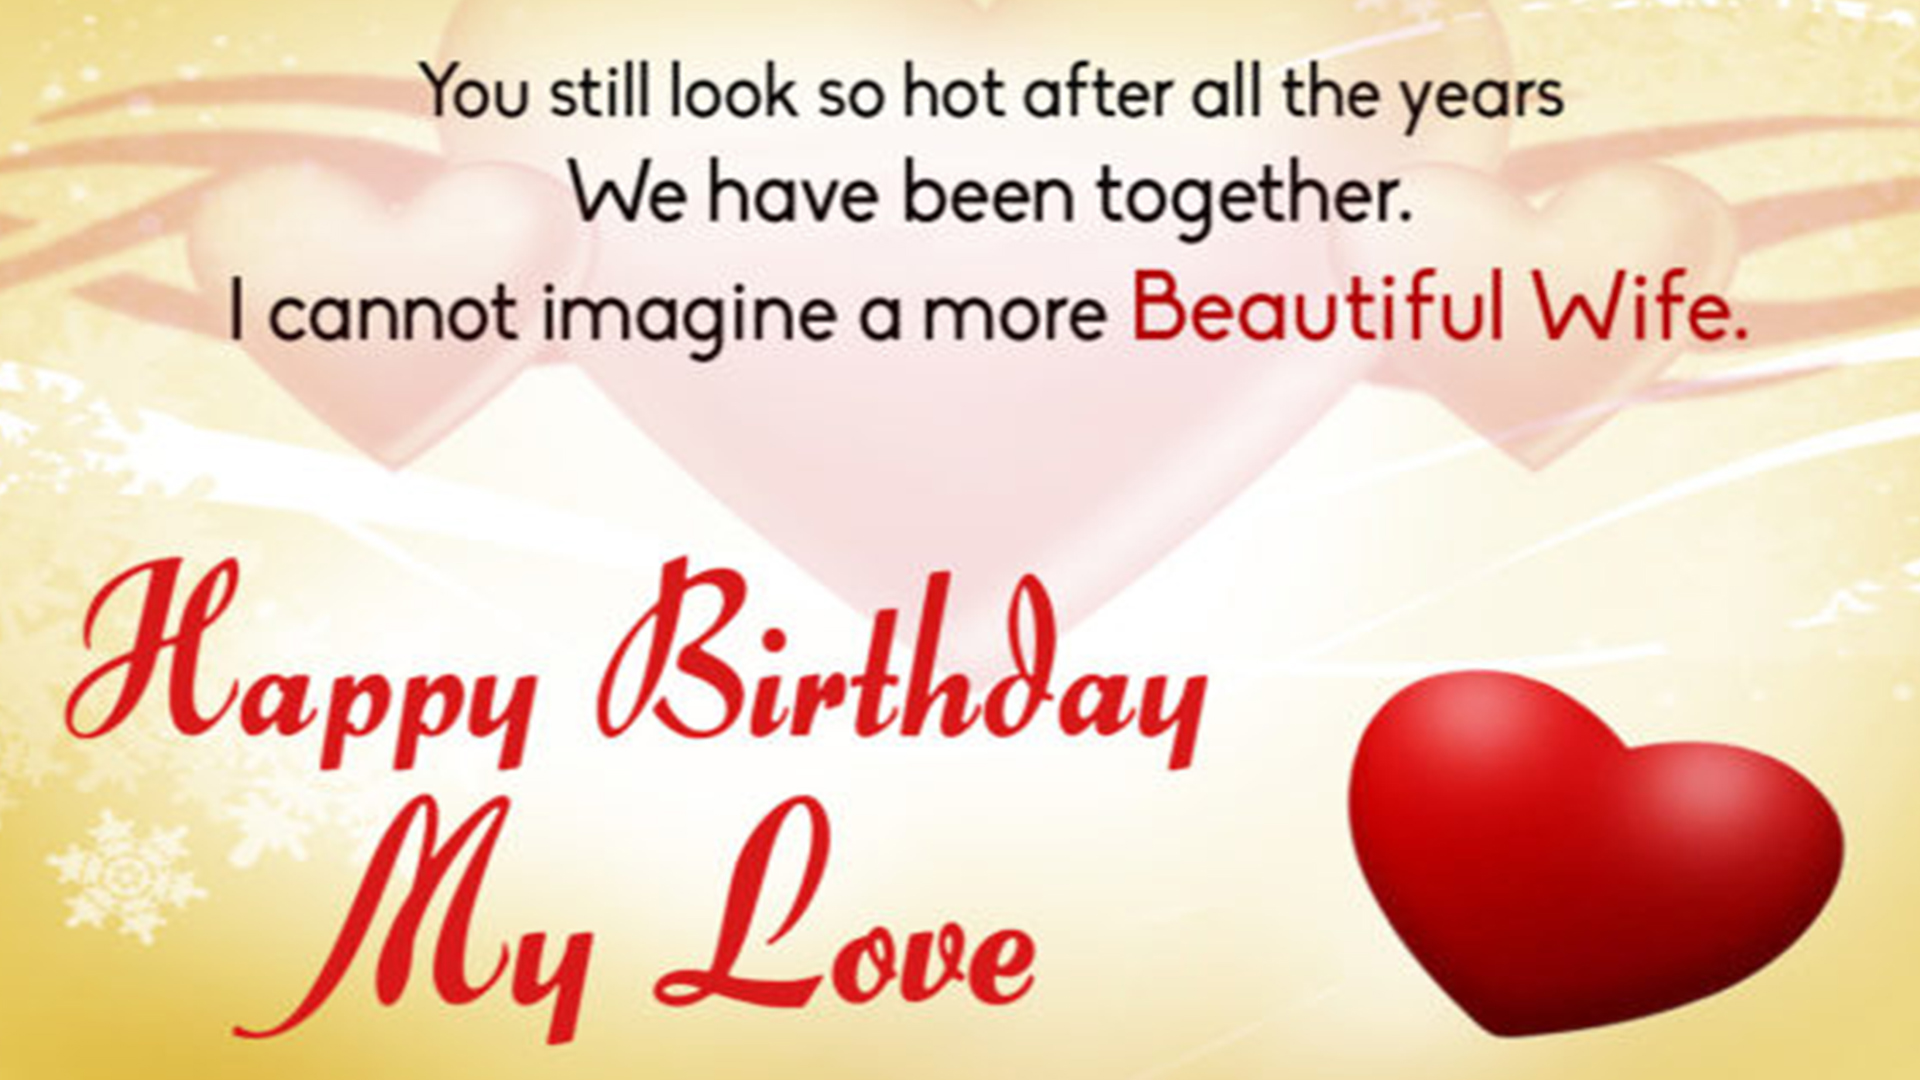 Happy Birthday Wife Birthday Wishes For Wife Images Free Download